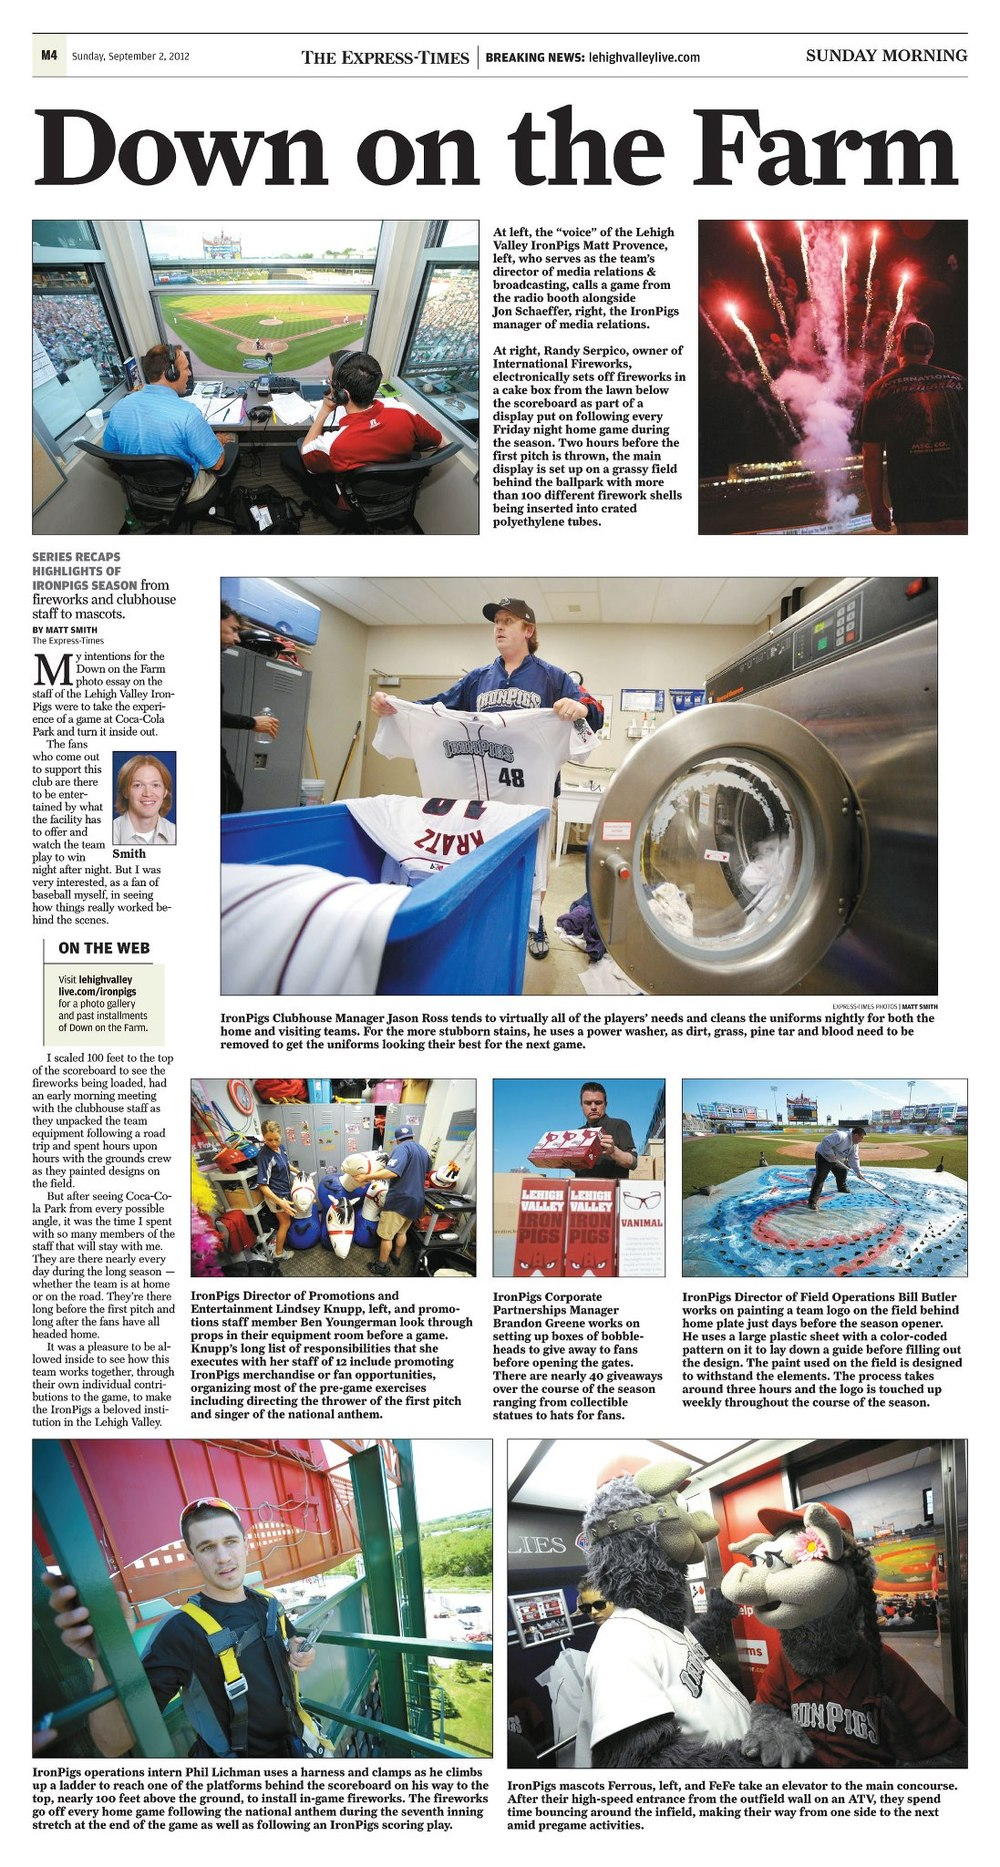 Long-term photo project on the staff of the Lehigh Valley IronPigs called 'Down on the Farm' in the pages of The Express-Times.